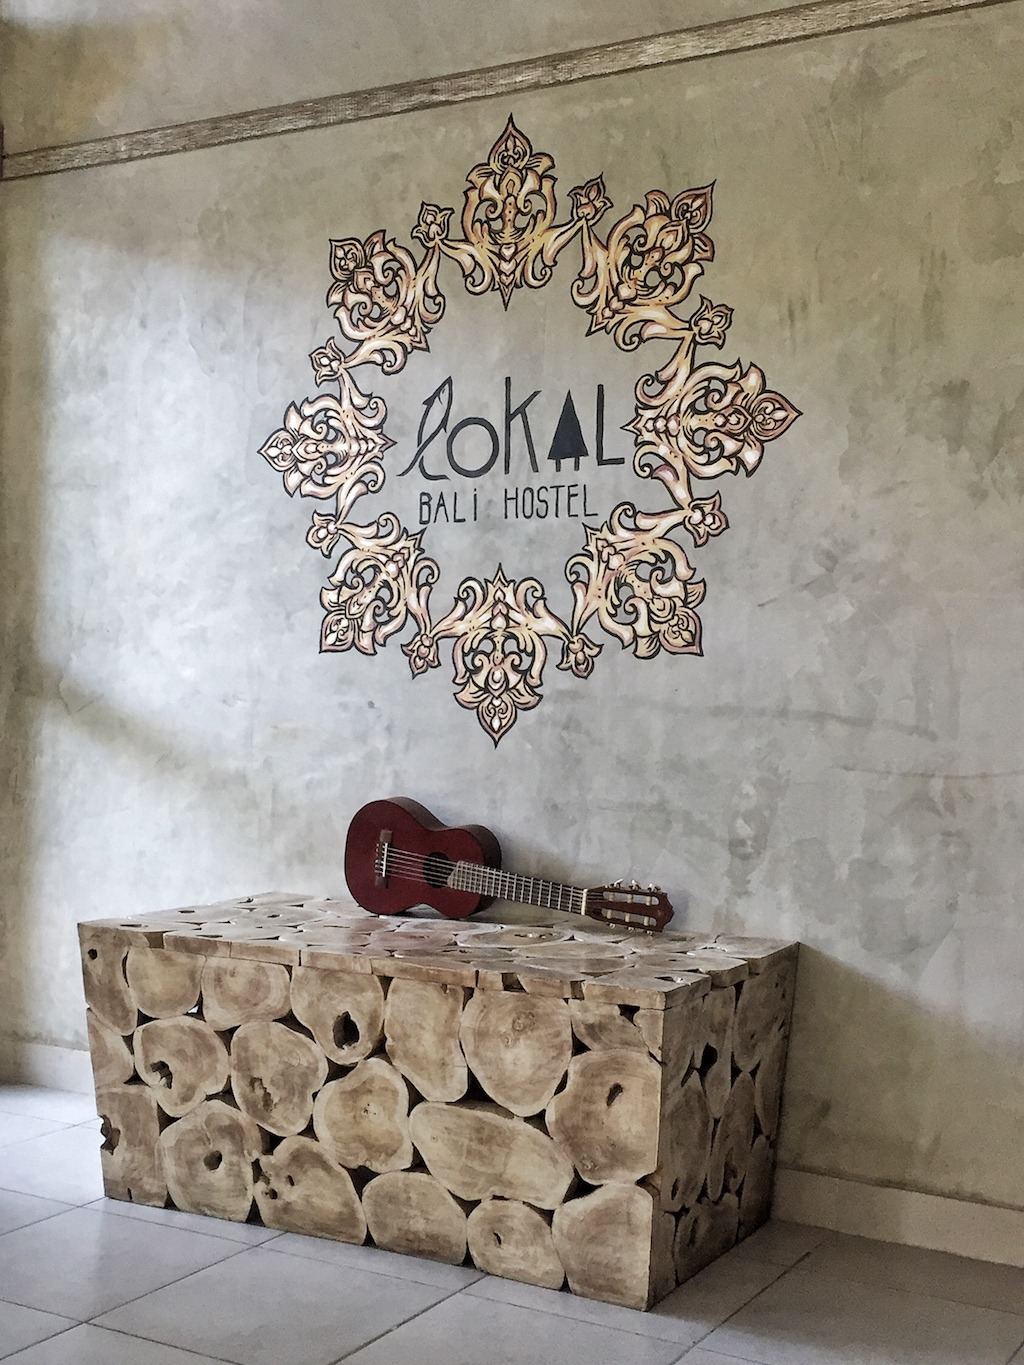 Hostel Recommendation While Travelling to Kuta – Lokal Bali Hostel Friends